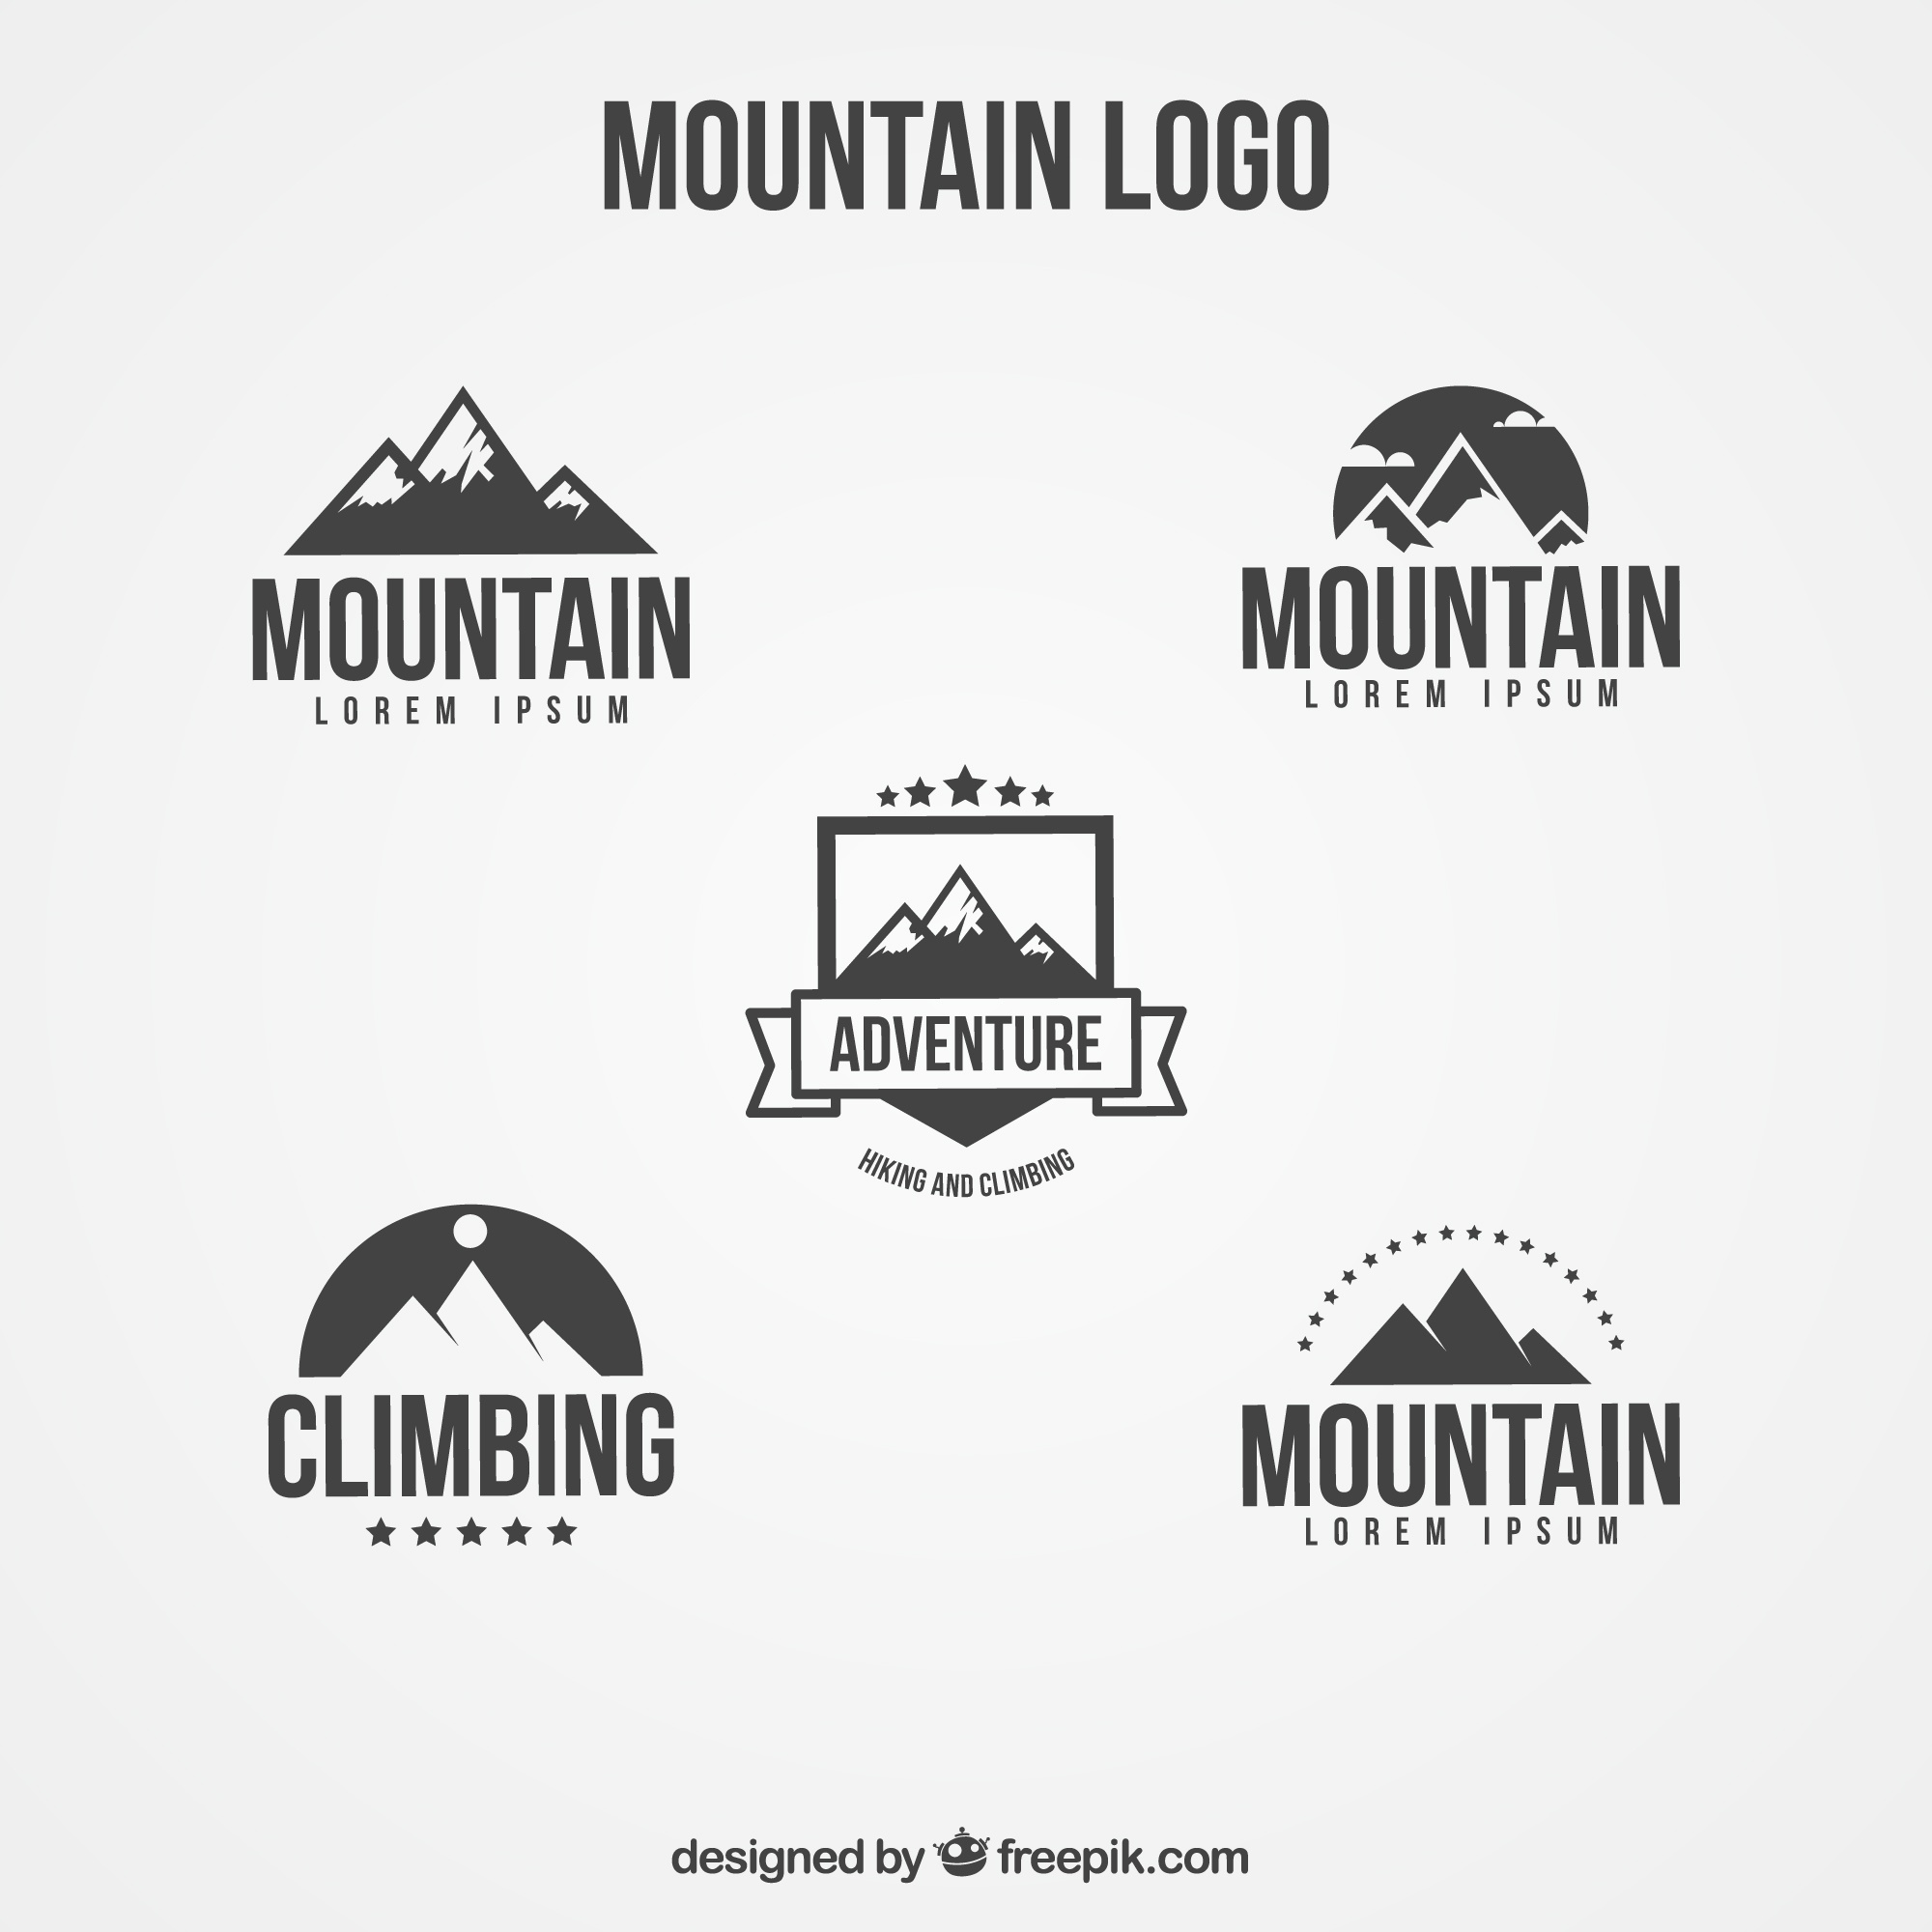 Logos set of flat mountain